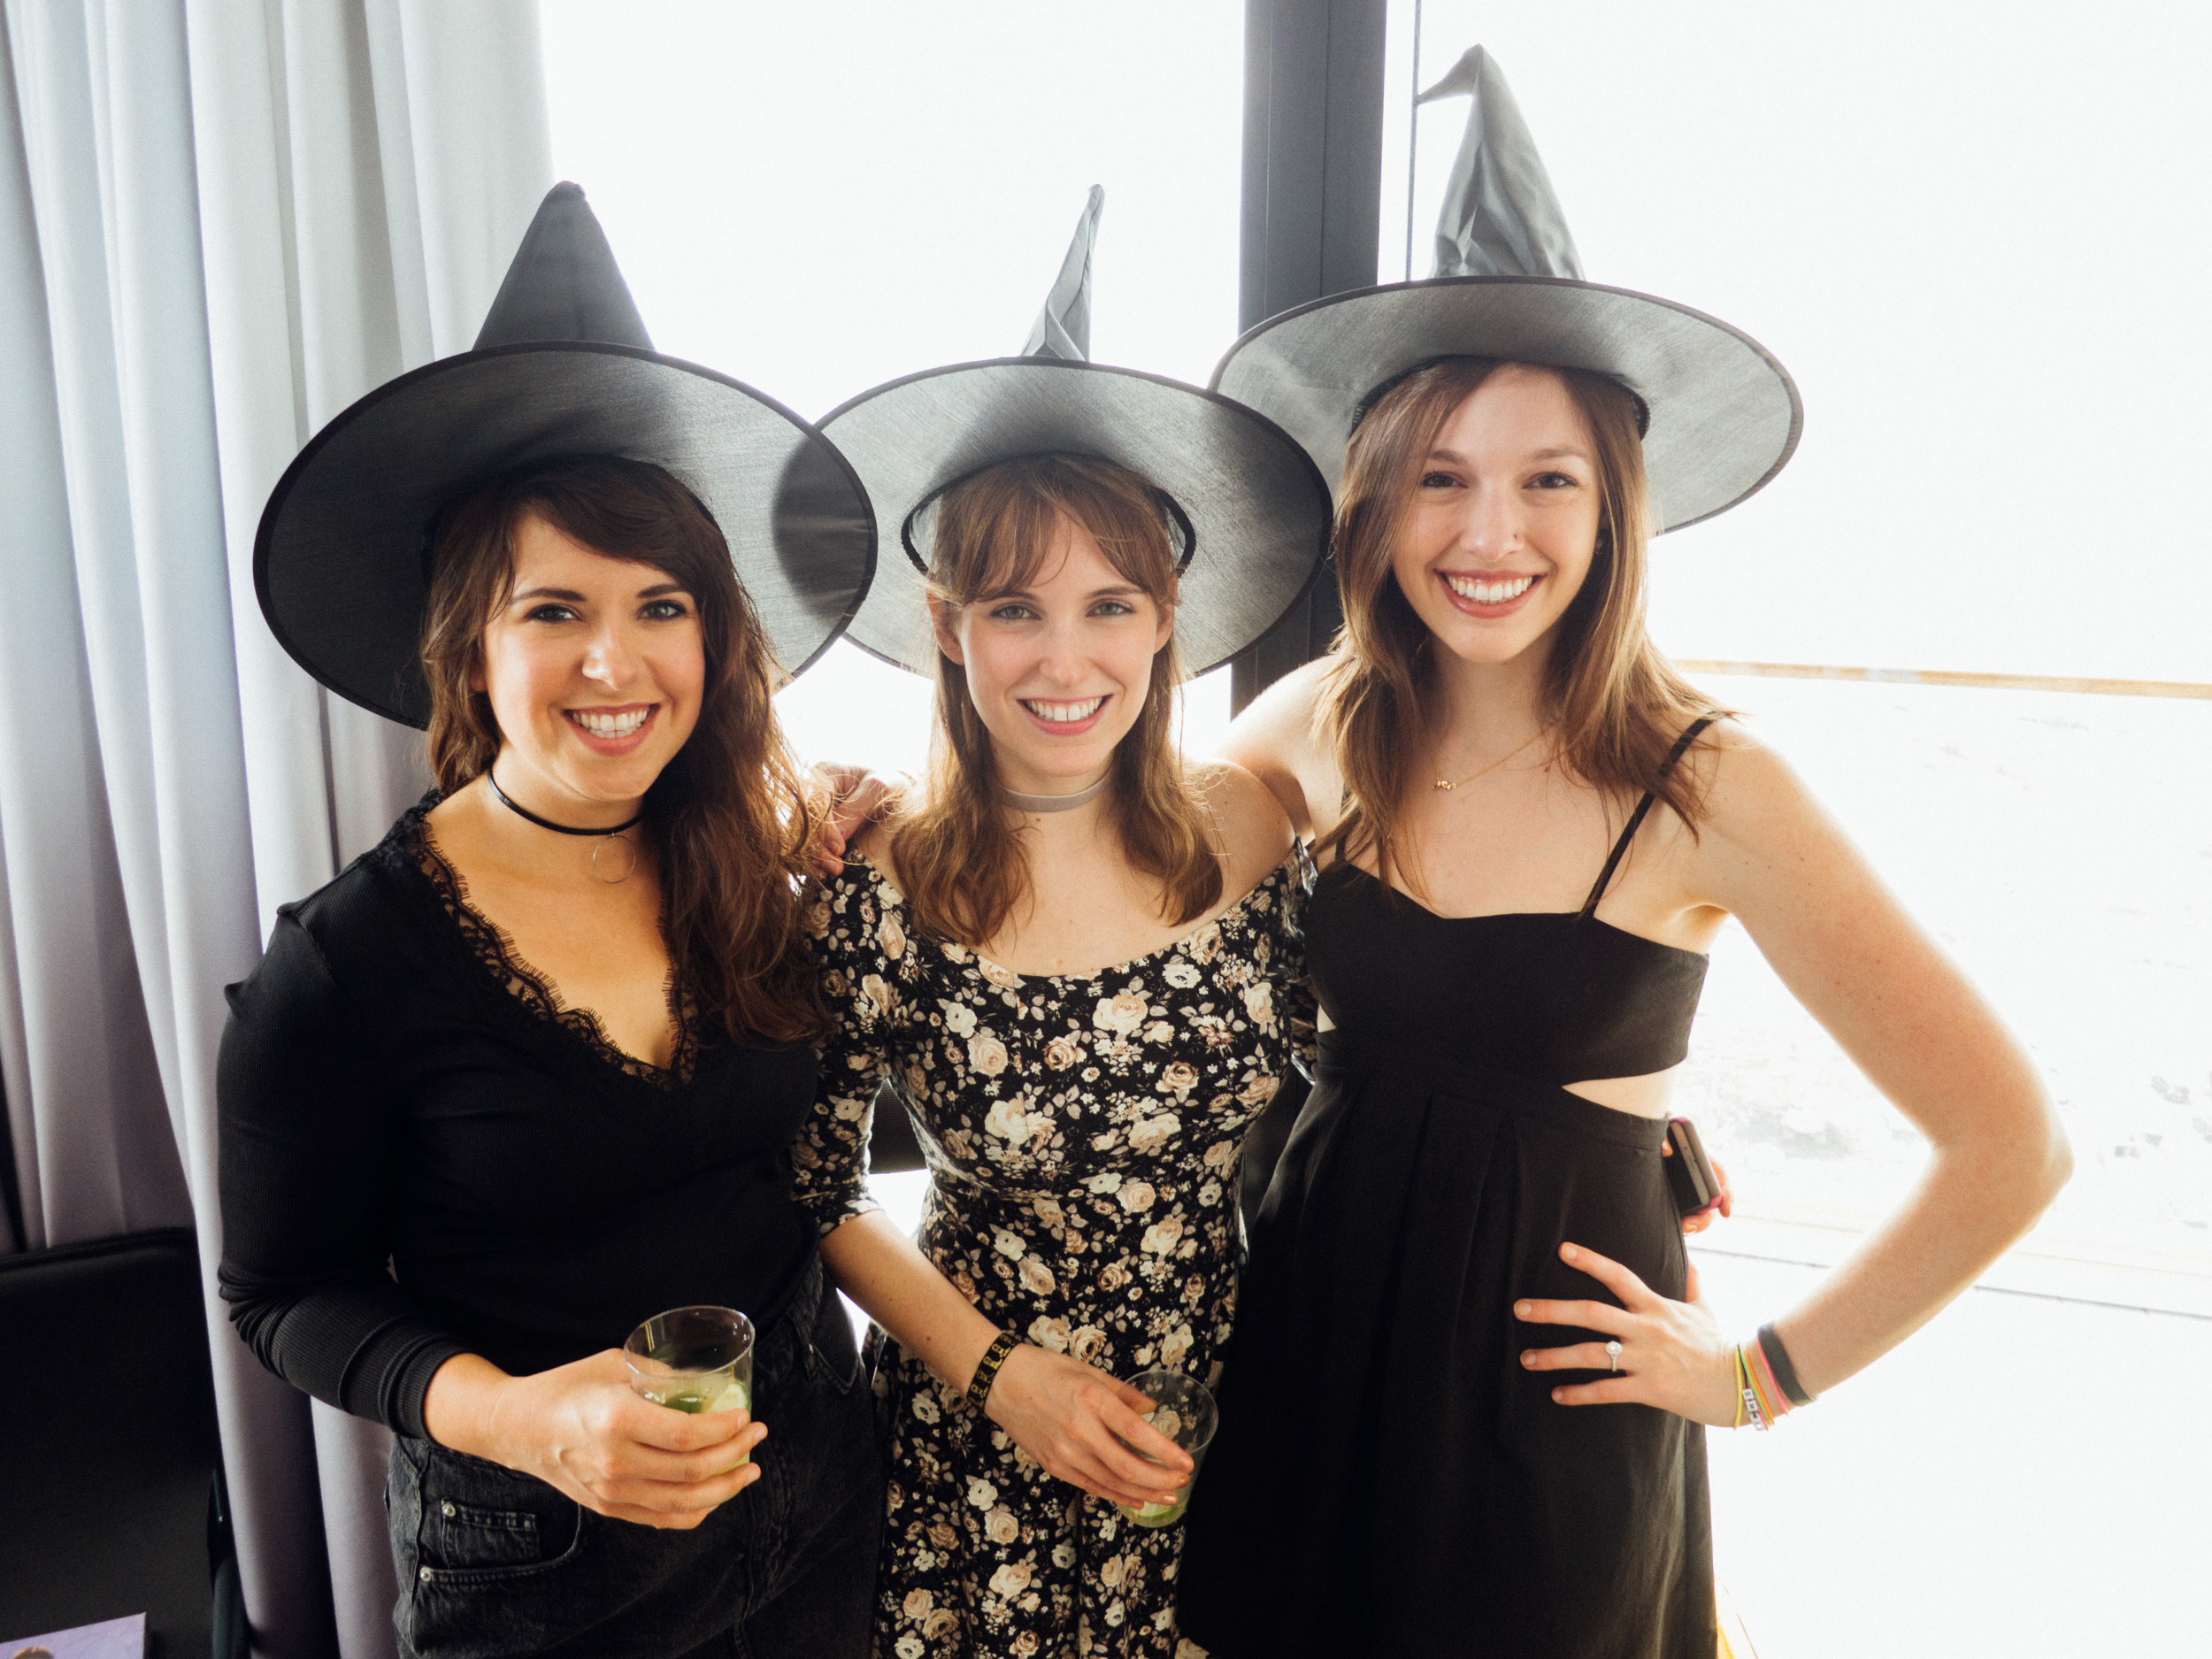 Witch hats were fun to wear but also served the purpose of uniting us as a group and pulling the theme together in a simple and obvious way - no sashes or inappropriate paraphernalia in sight.